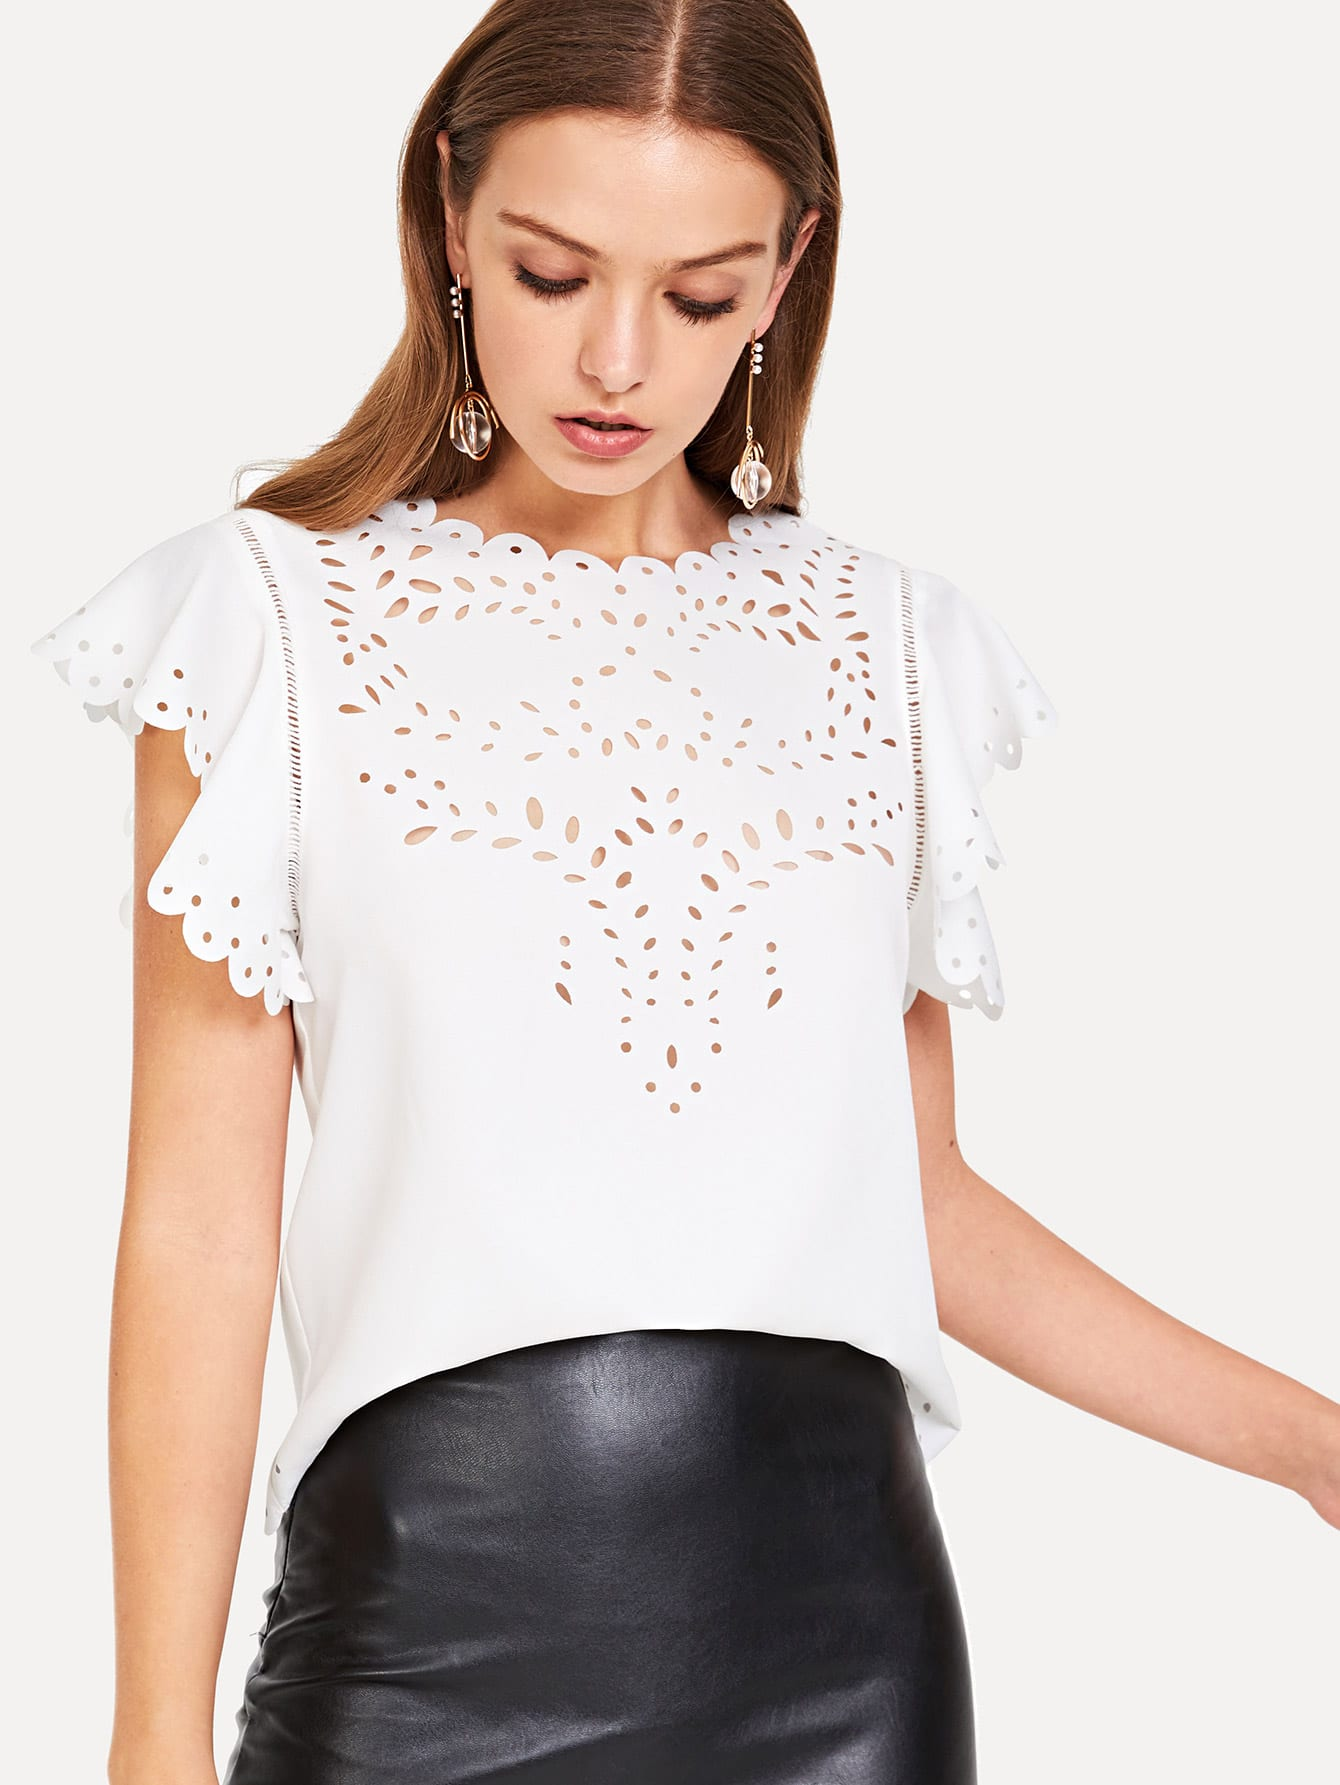 Eyelet Scallop Trim Lace Insert Top eyelet lace botanical print top